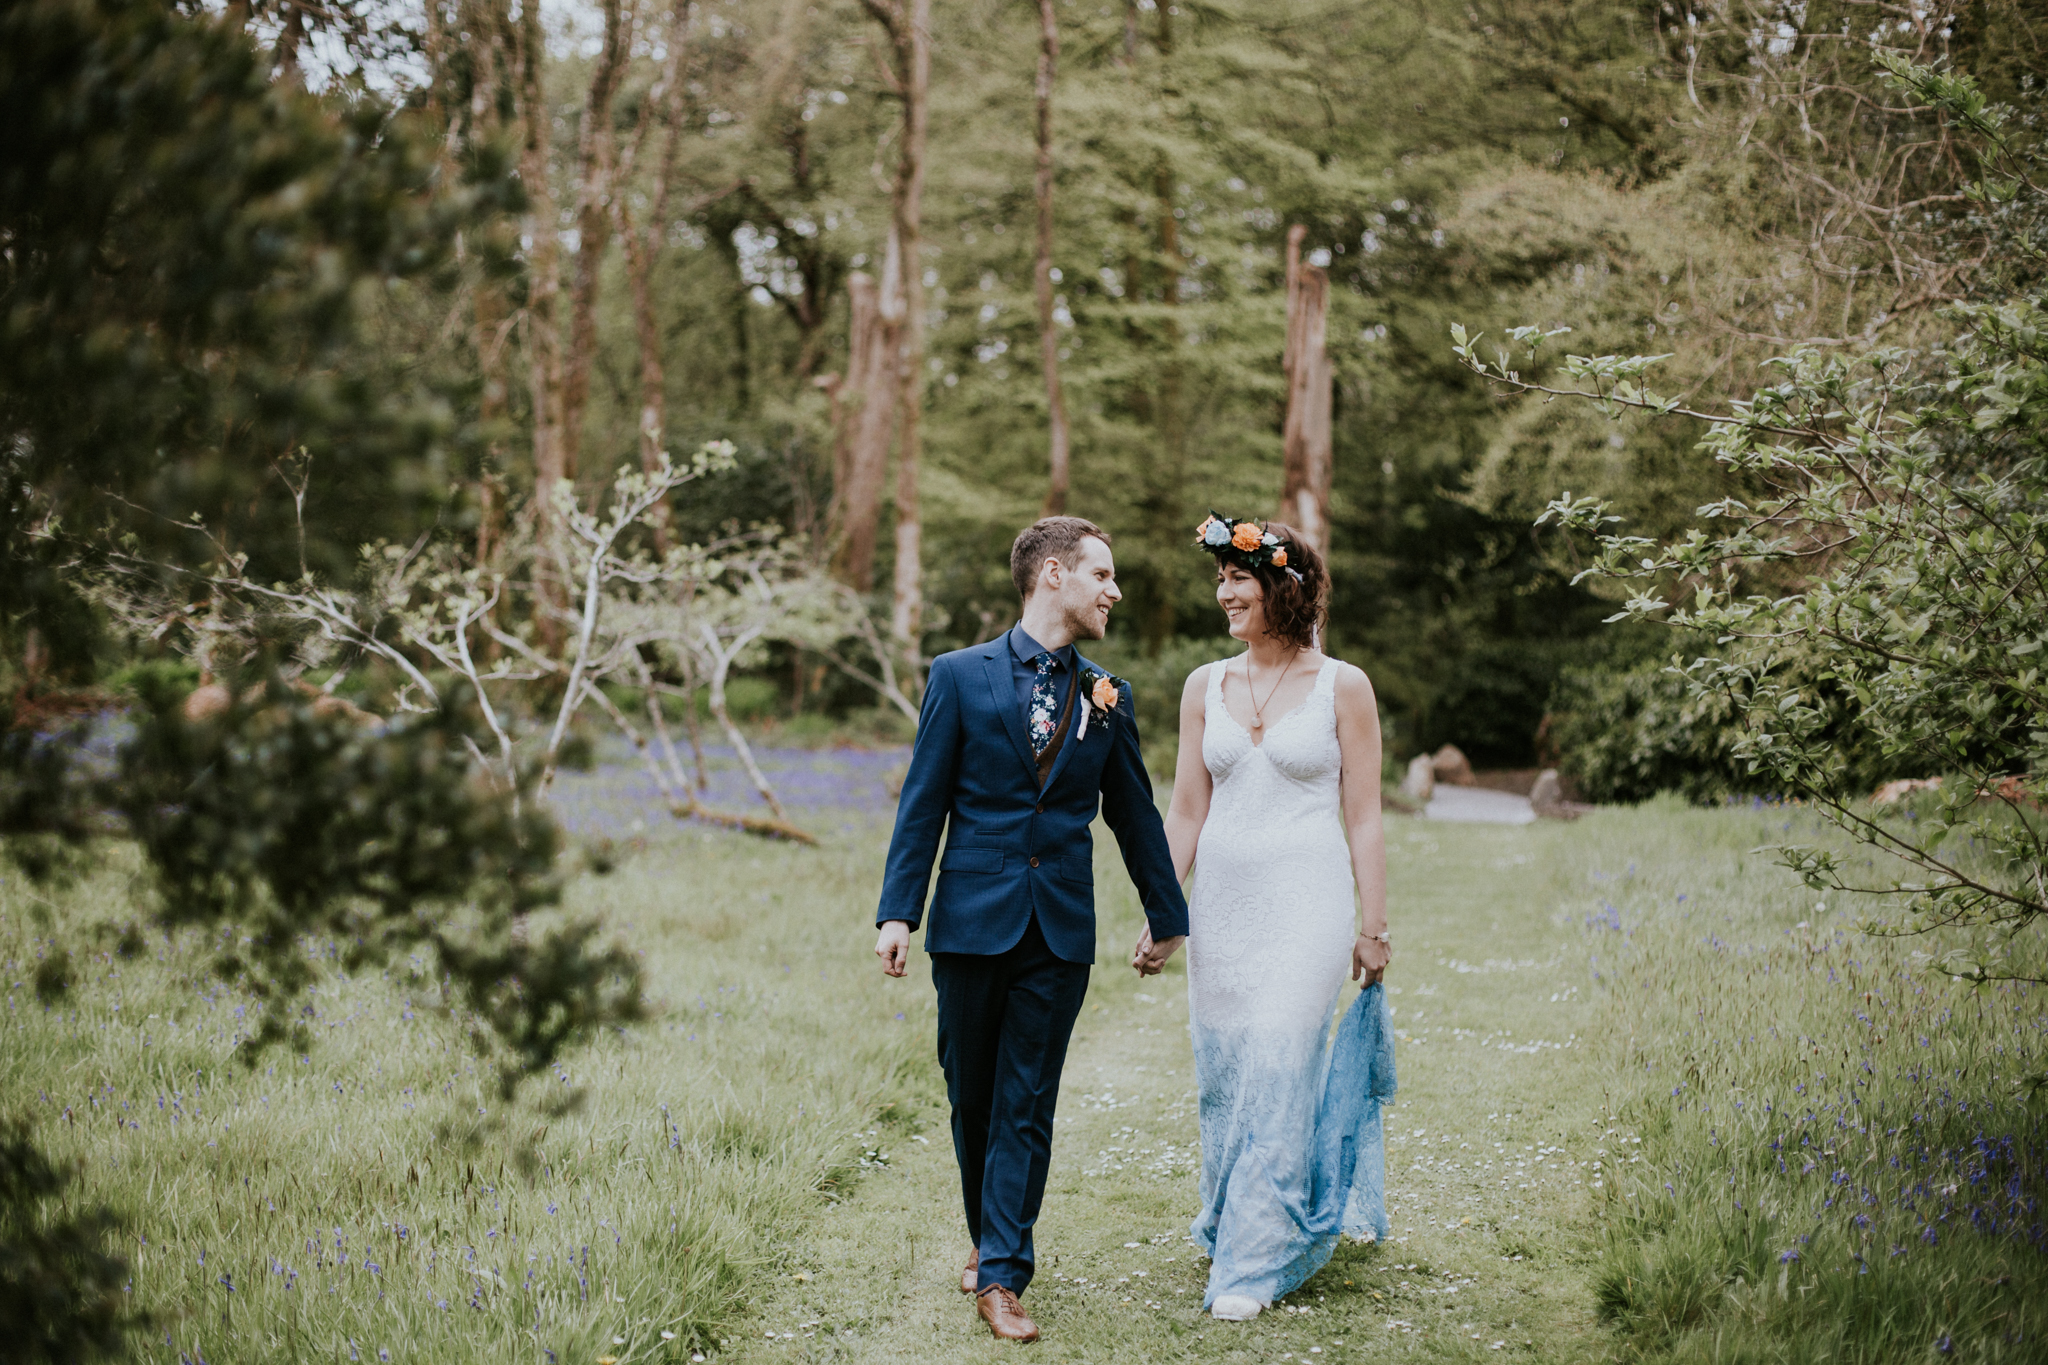 The bride and groom are walking together in the woodland of Inish Beg Estate in Ireland